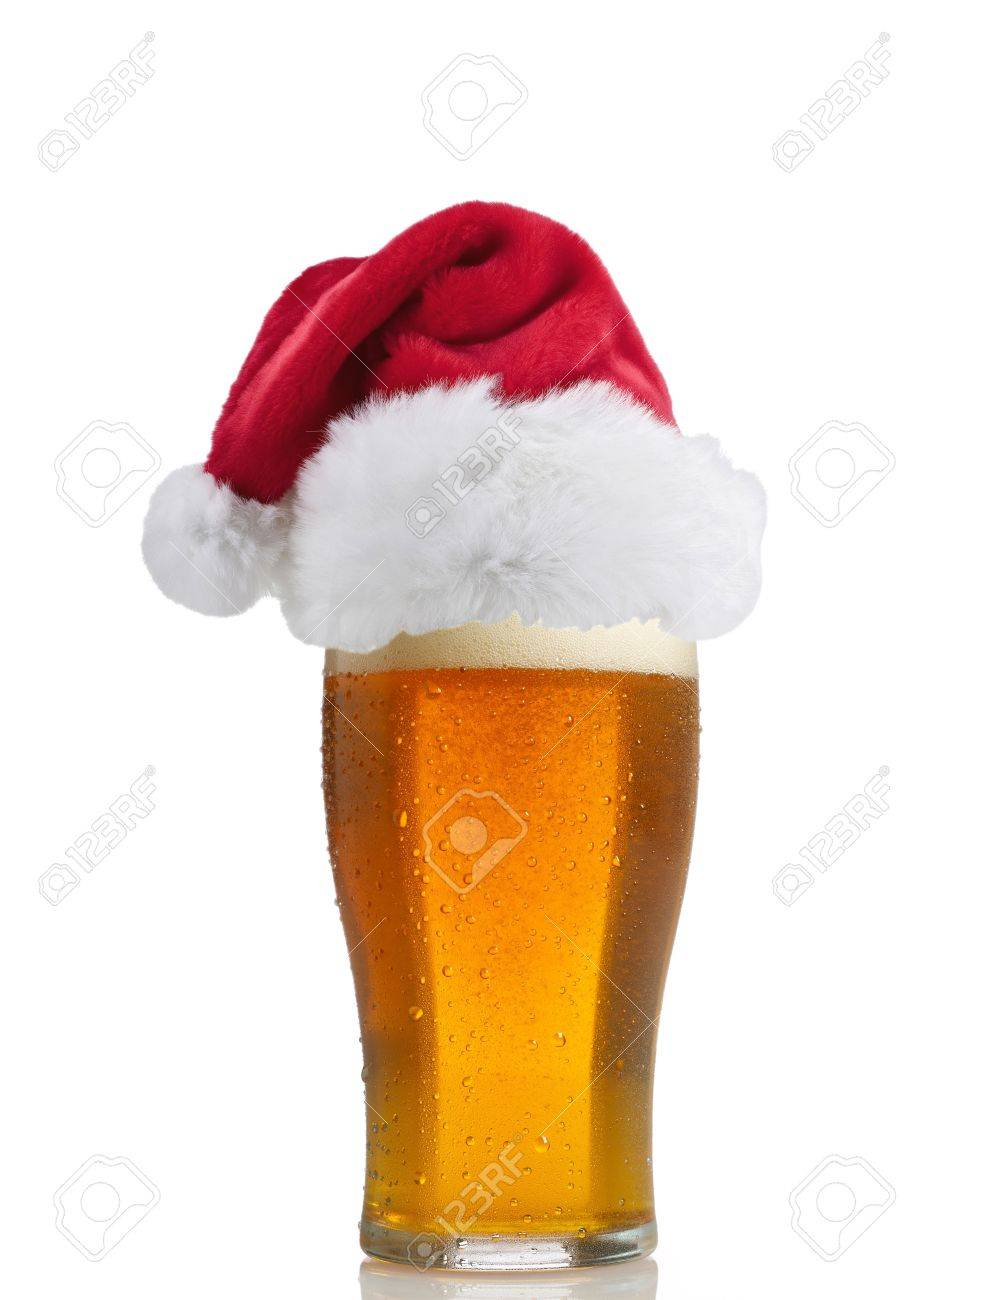 630d83ebf7e Santa Claus hat with beer Stock Photo - 14060603